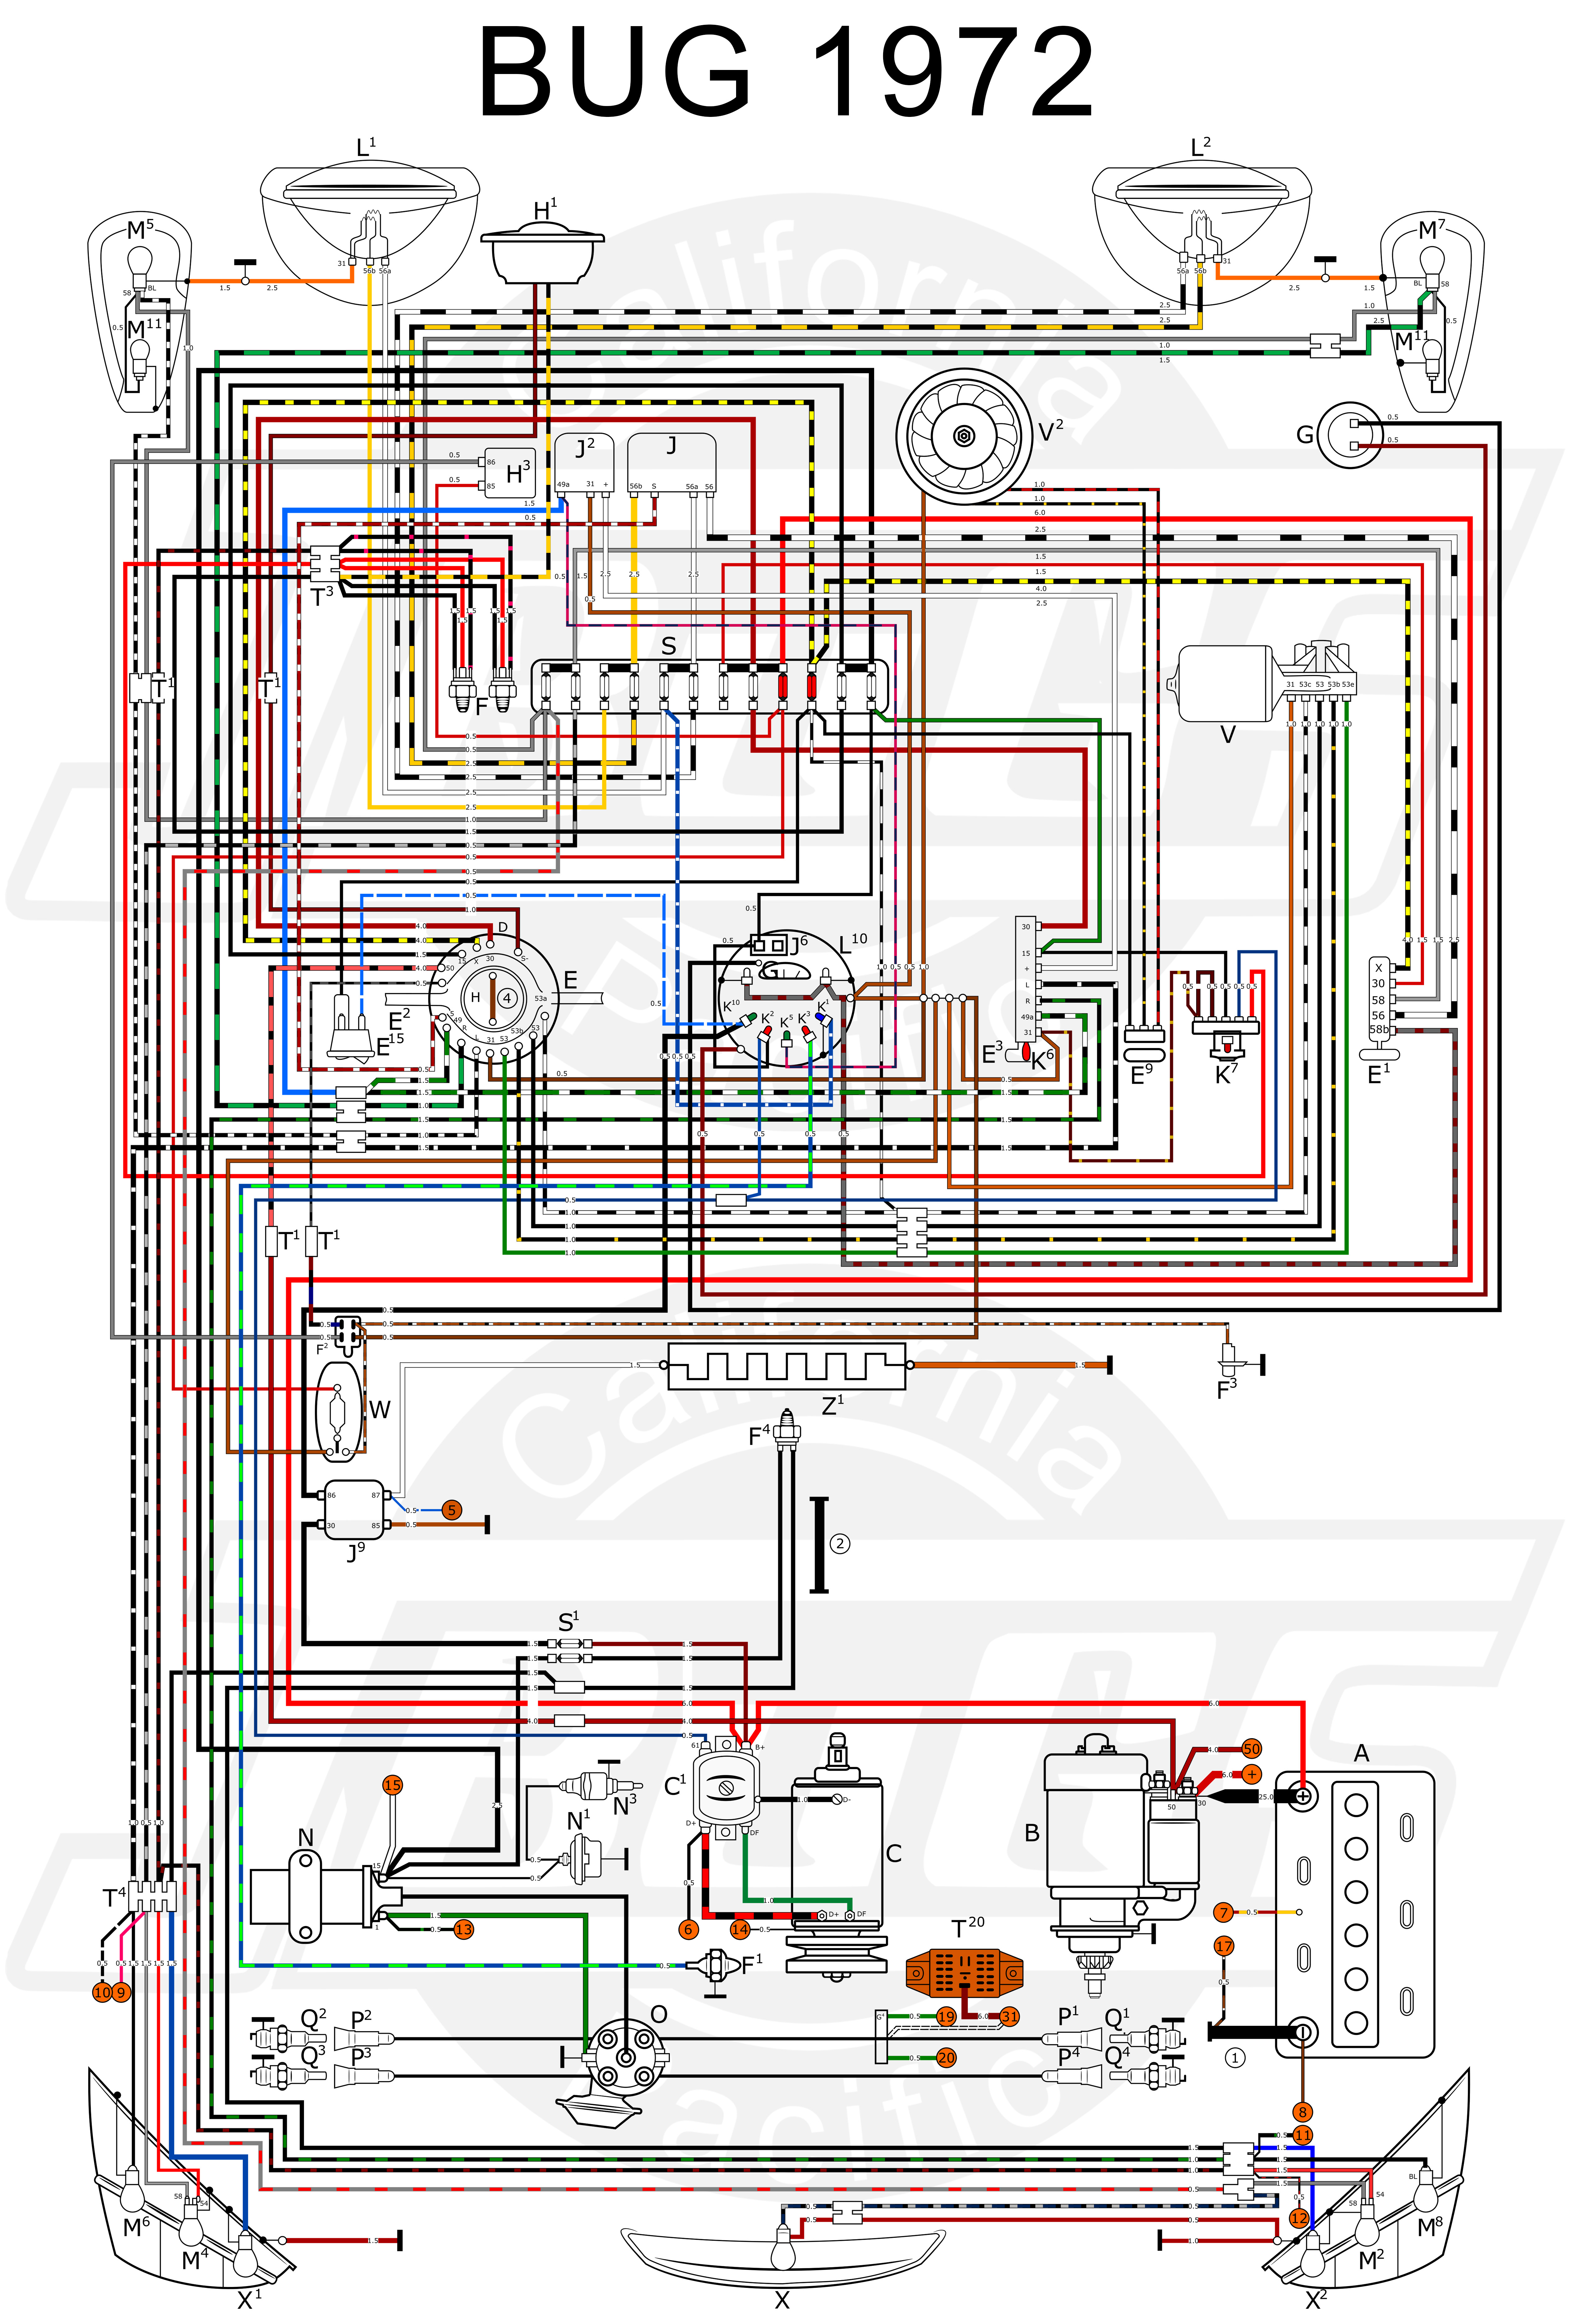 2006 vw beetle fuse diagram d977 67 vw bug fuse diagram wiring schematic wiring resources 2006 volkswagen beetle wiring diagram vw bug fuse diagram wiring schematic